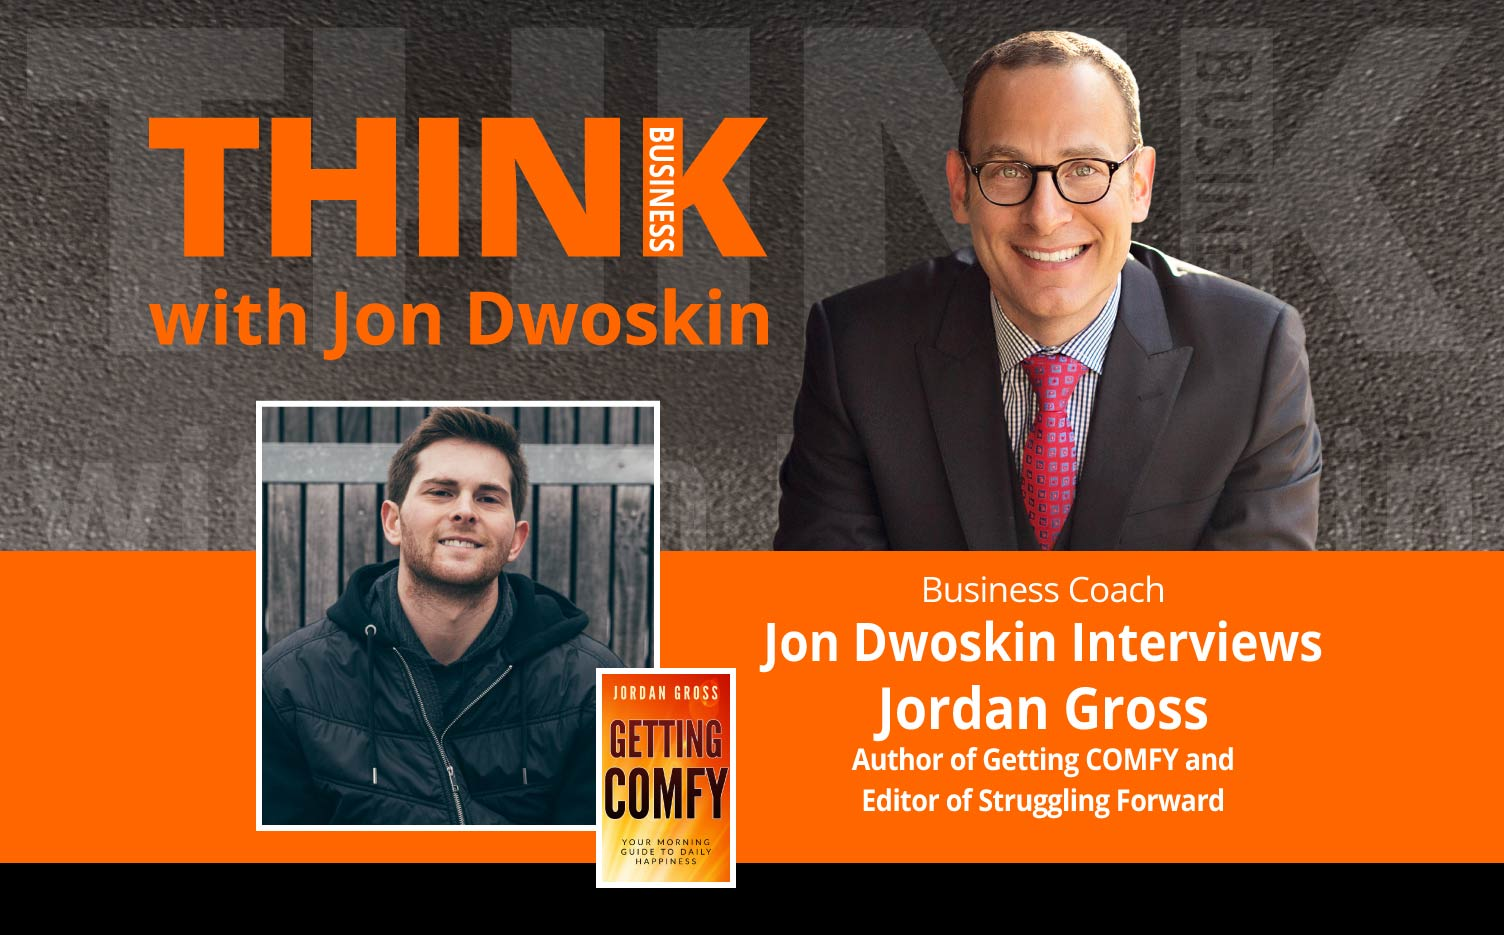 THINK Business Podcast: Jon Dwoskin Interviews Jordan Gross, Author of Getting COMFY and Editor of Struggling Forward